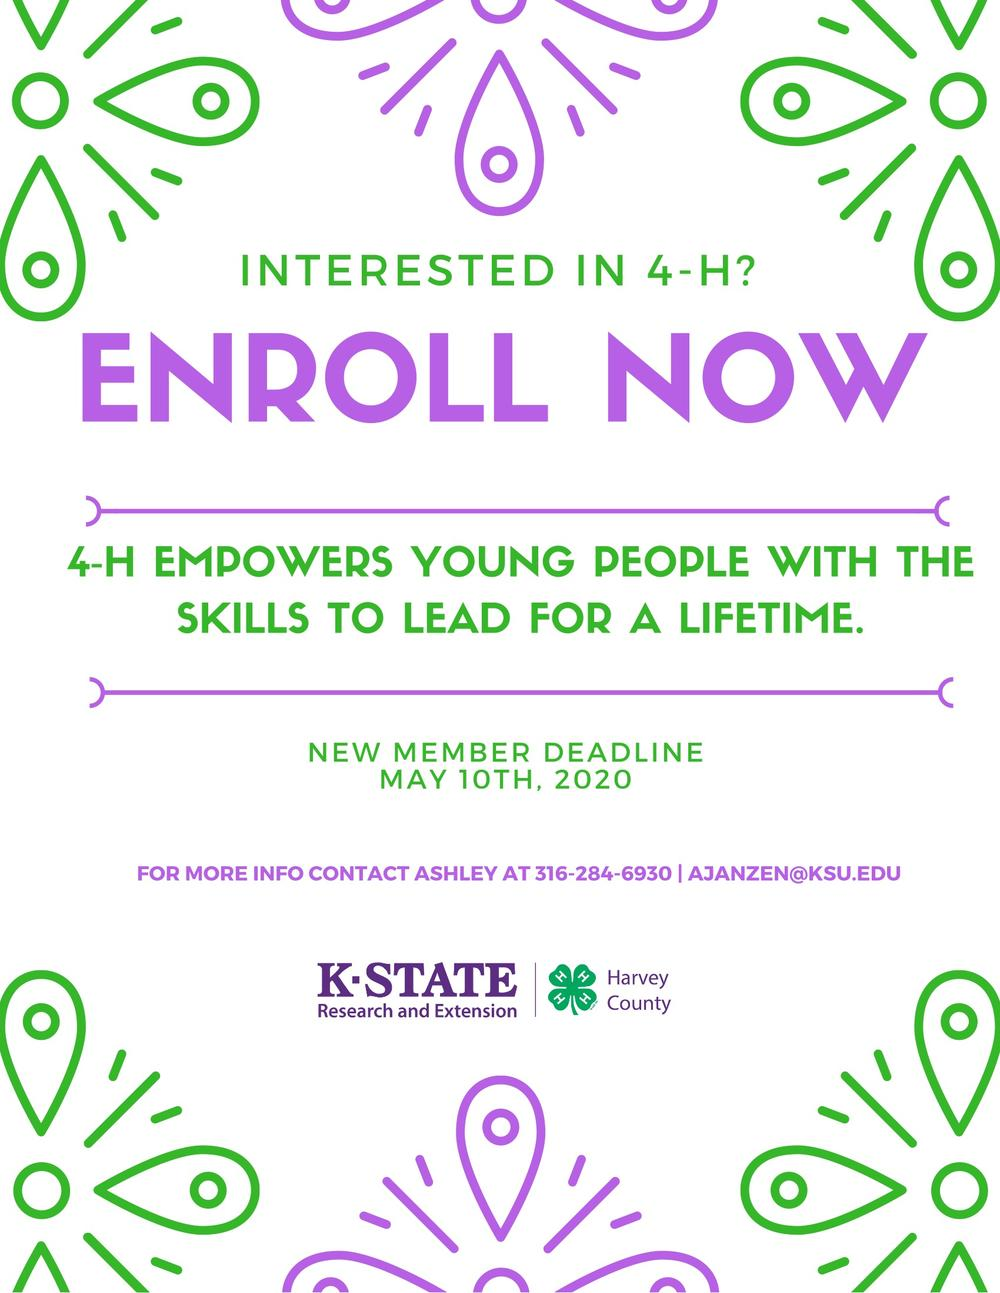 Sign Up for 4-H